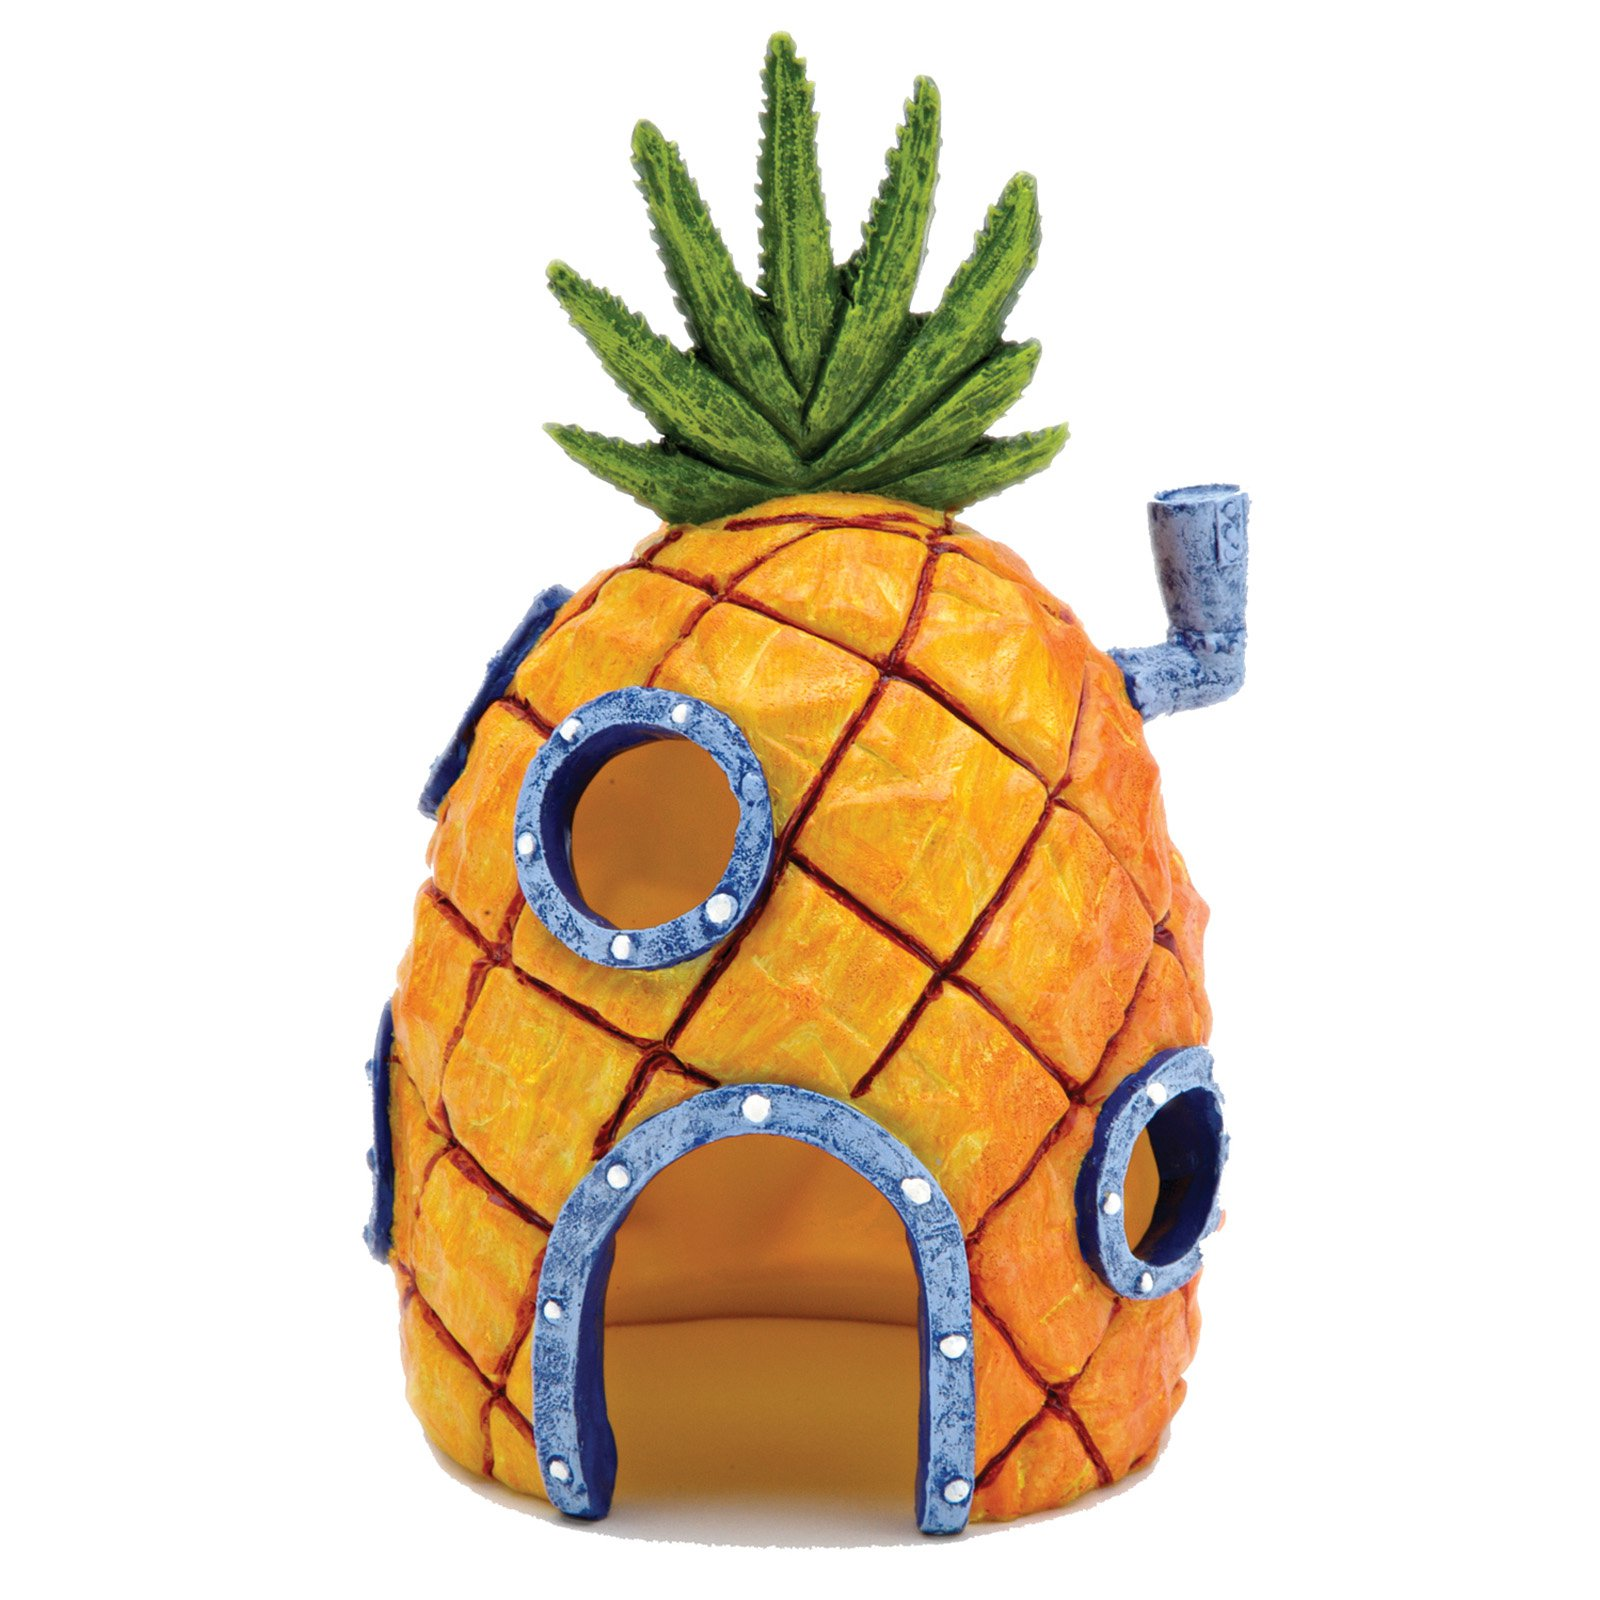 Penn Plax SpongeBob Pineapple Home Aquarium Ornament